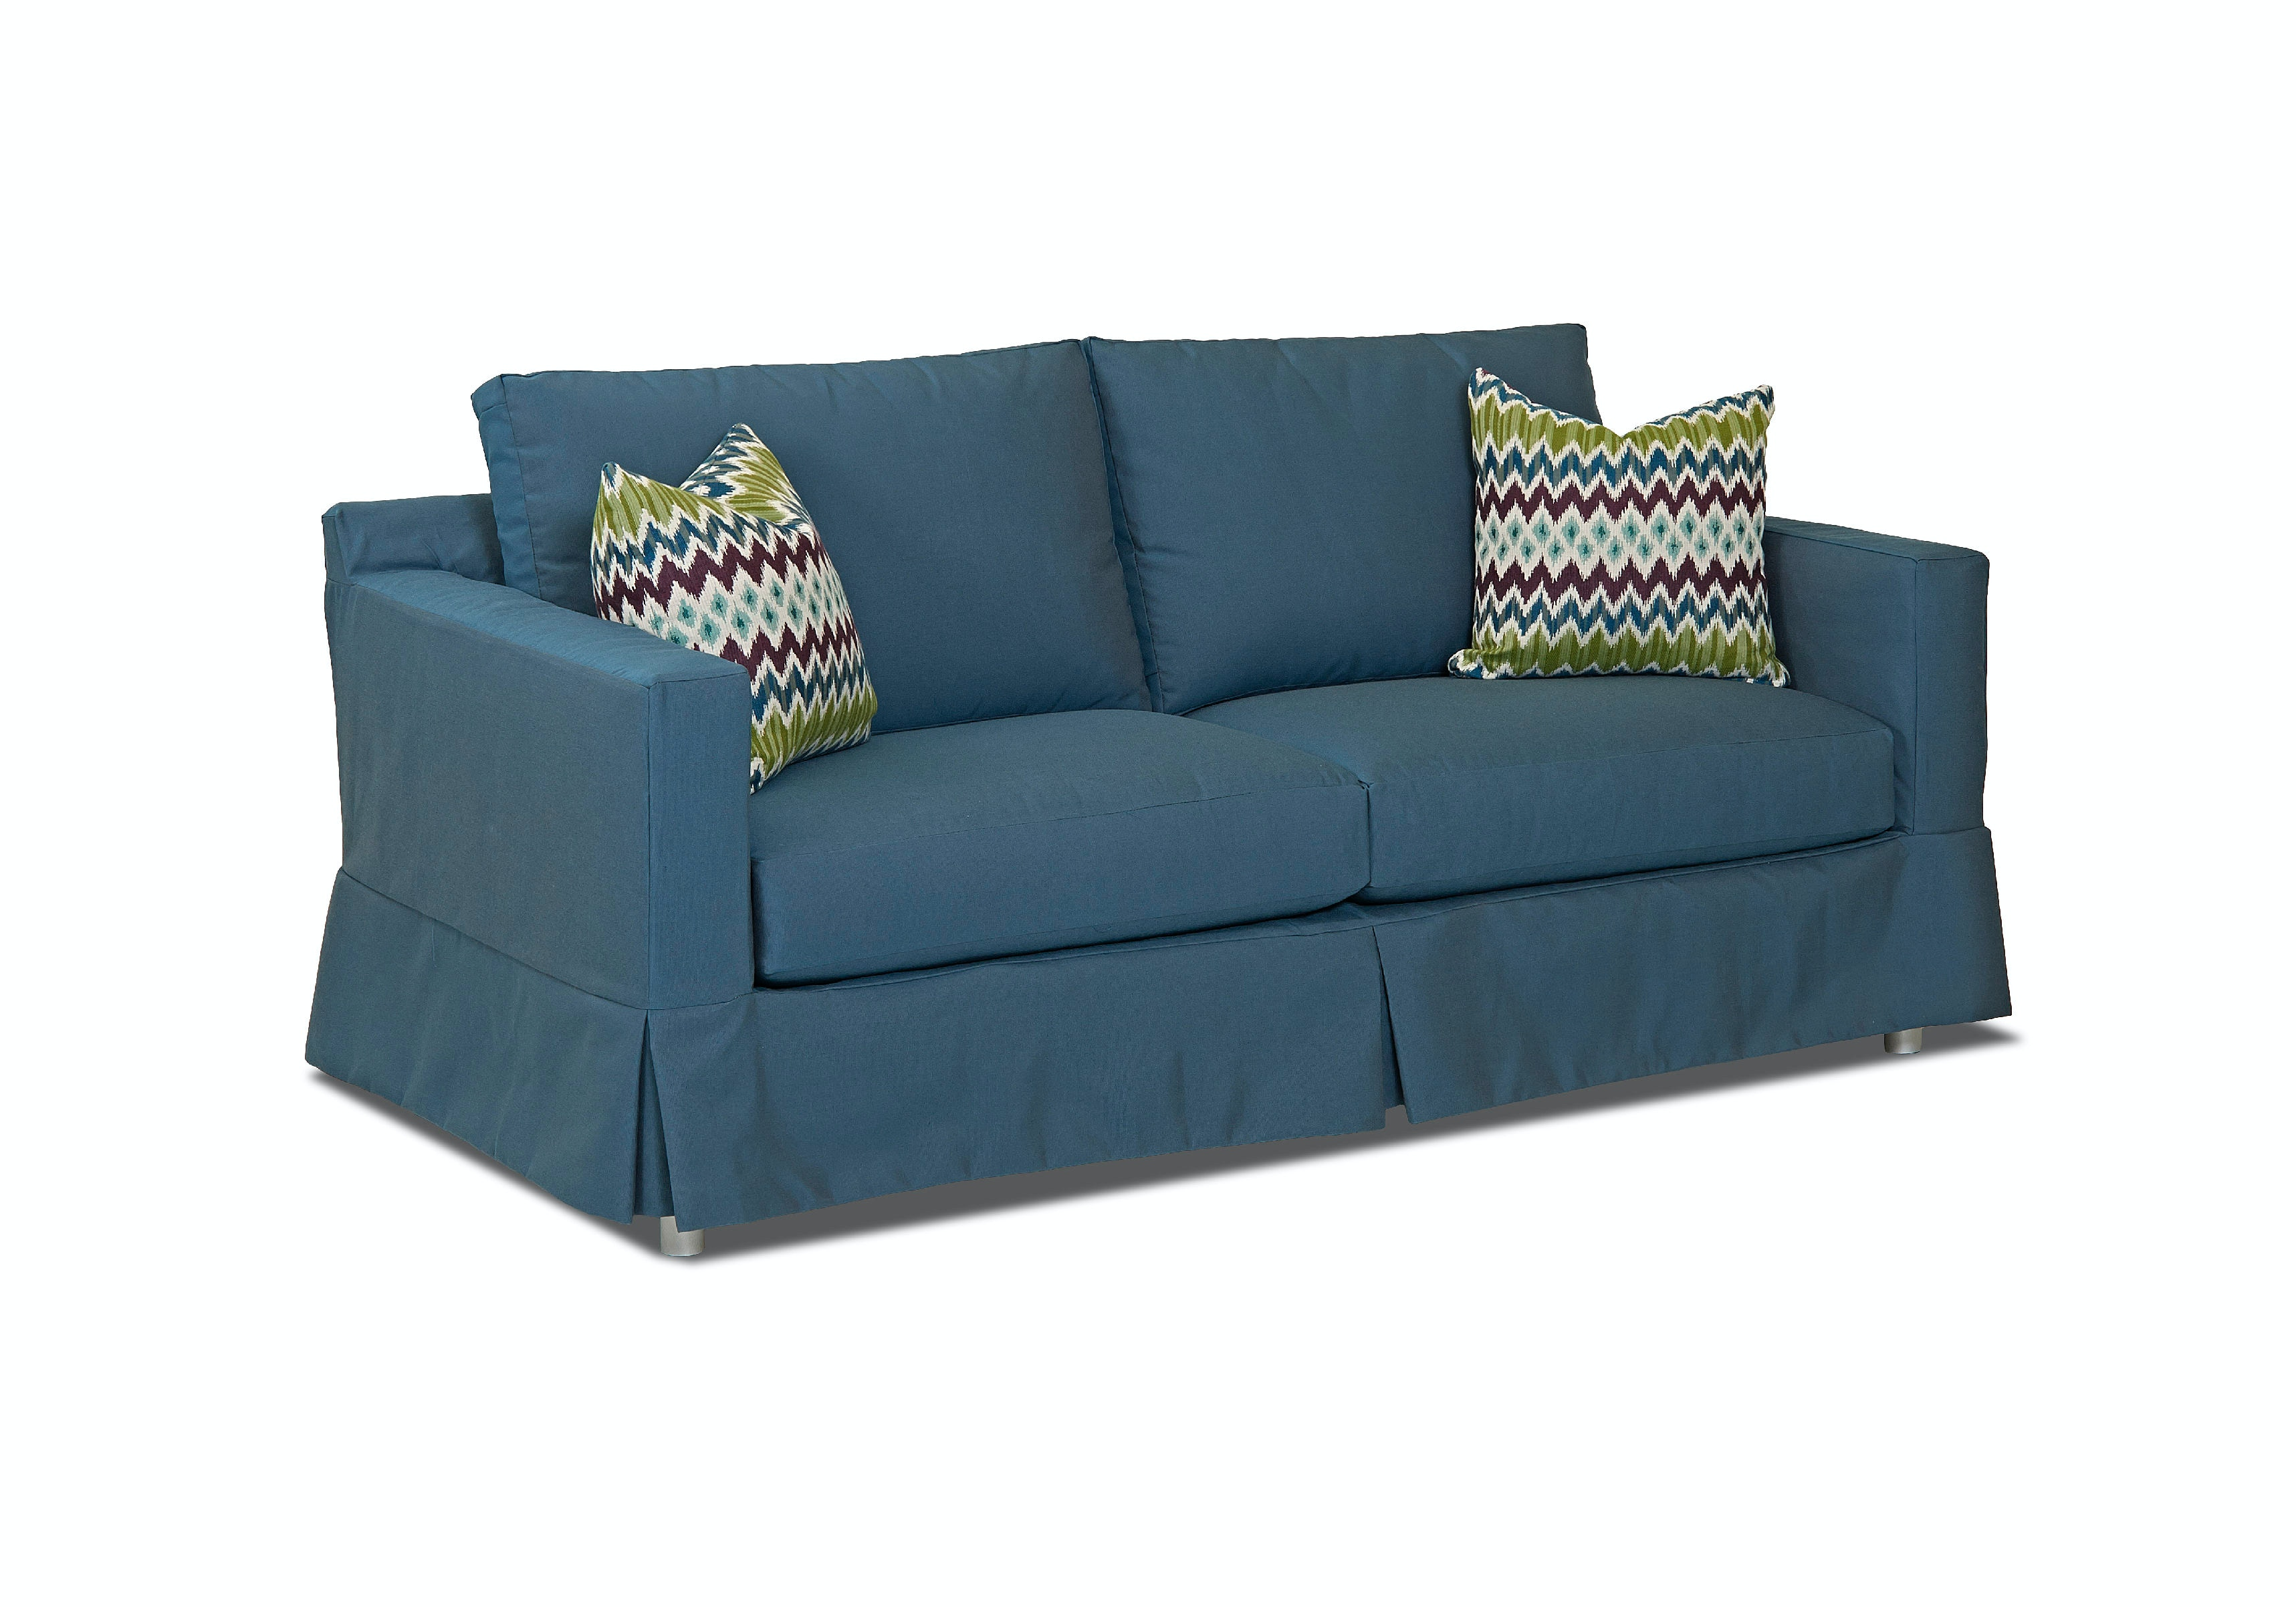 blue fl sofa council collection norwich klaussner outdoor outdoorpatio aspen w3385 s tuskers